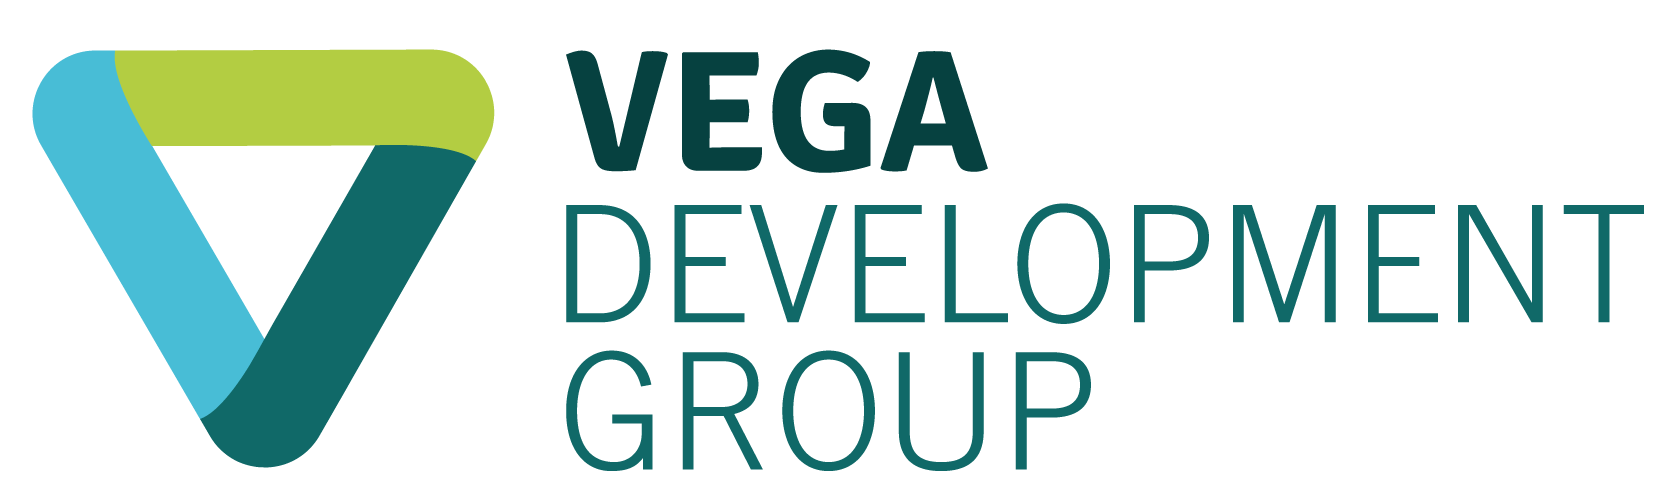 Vega Development Group